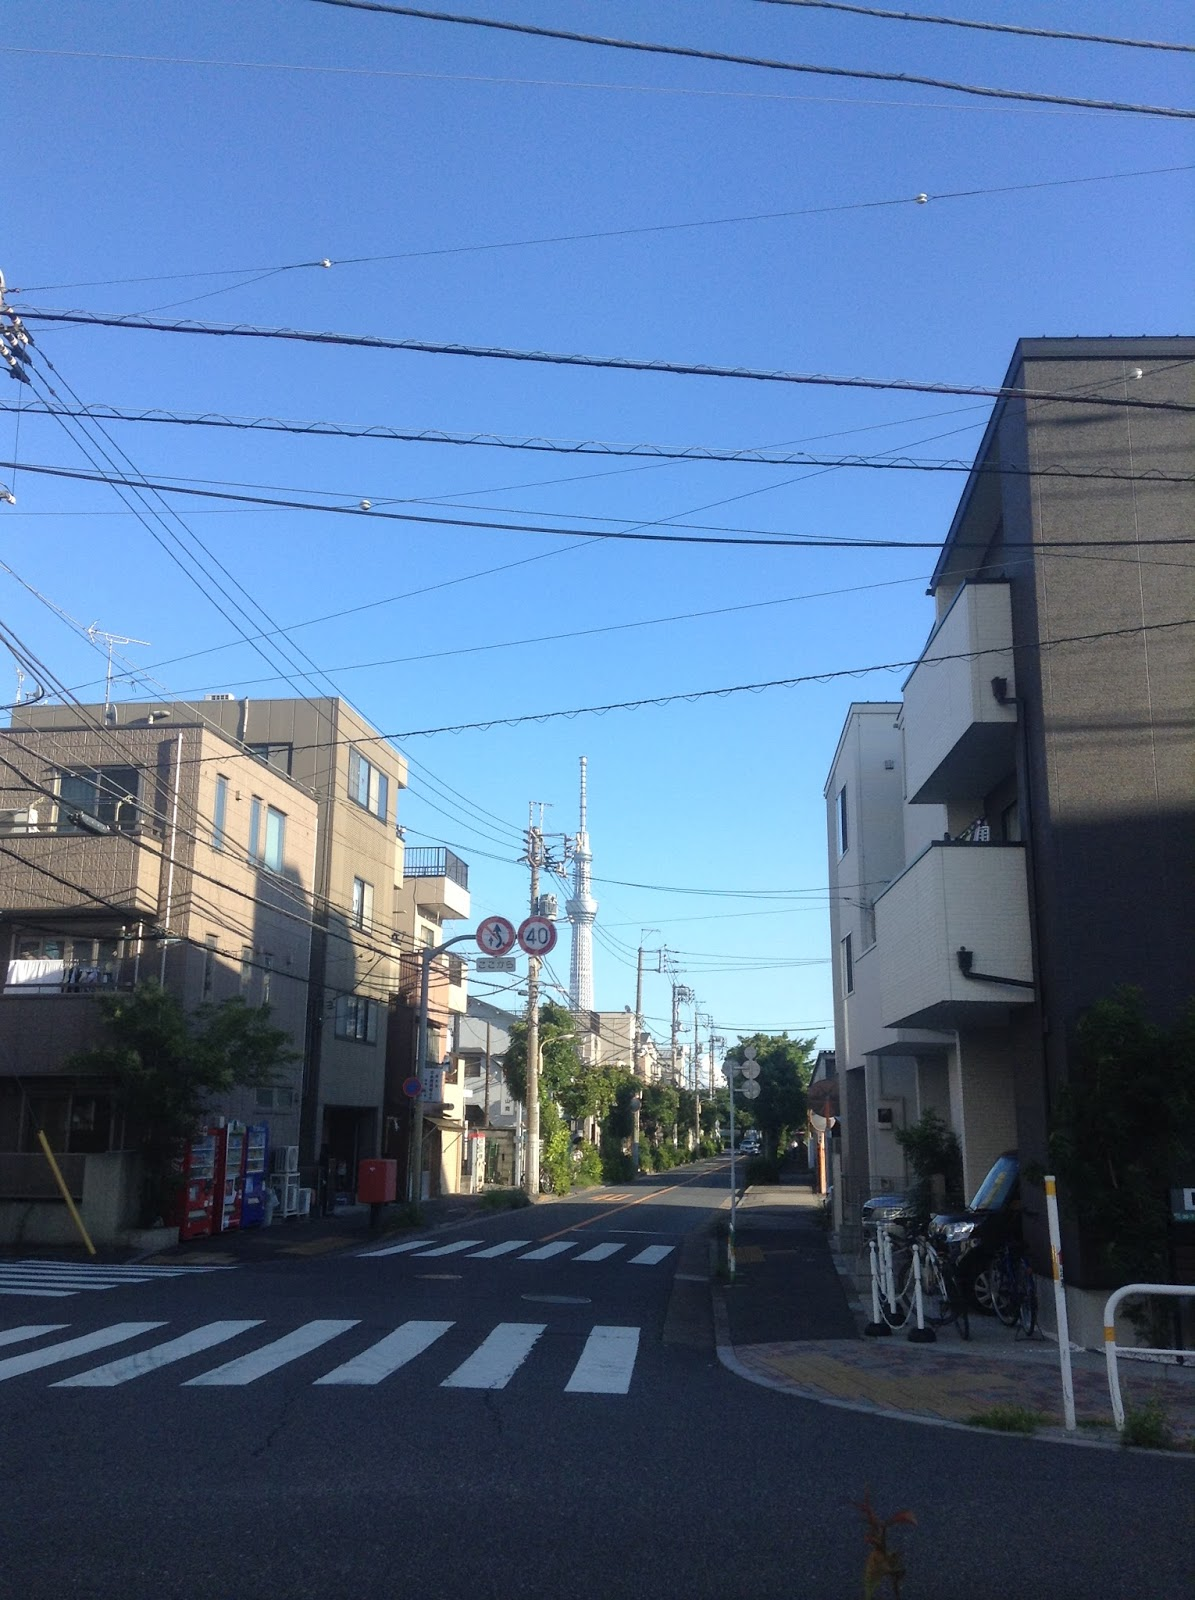 Japanese streets 9